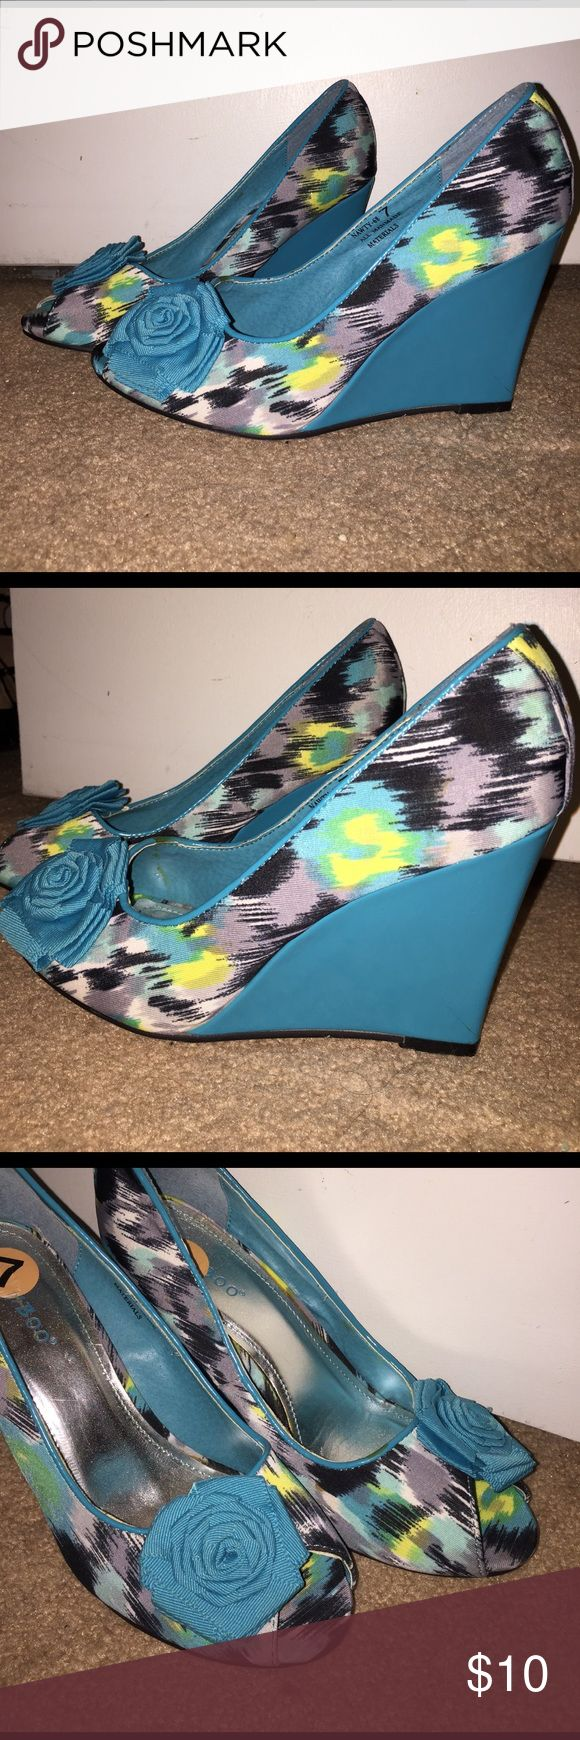 """Turquoise Wedges Turquoise wedge heels. """"Nawty-68"""" New never worn Bamboo Shoes Wedges"""